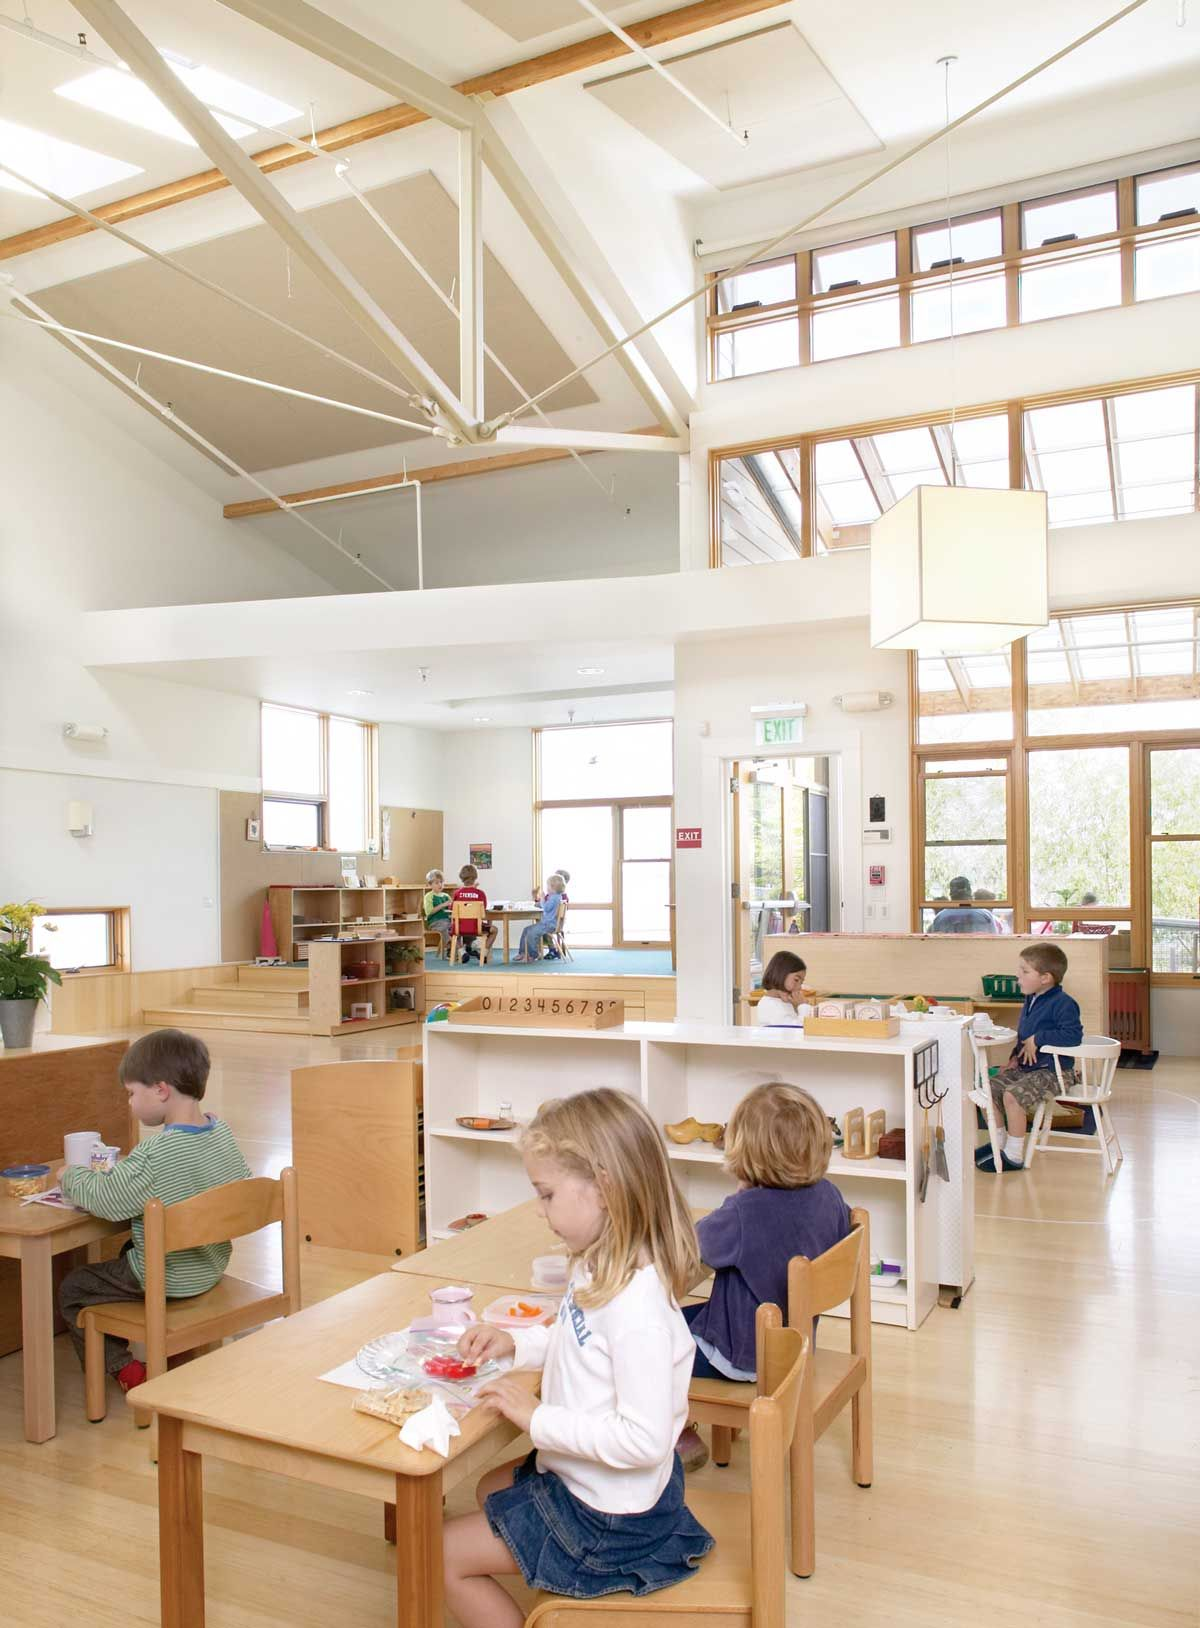 grove christian architecture schools systems sheldon projects school hickory interior laboratory